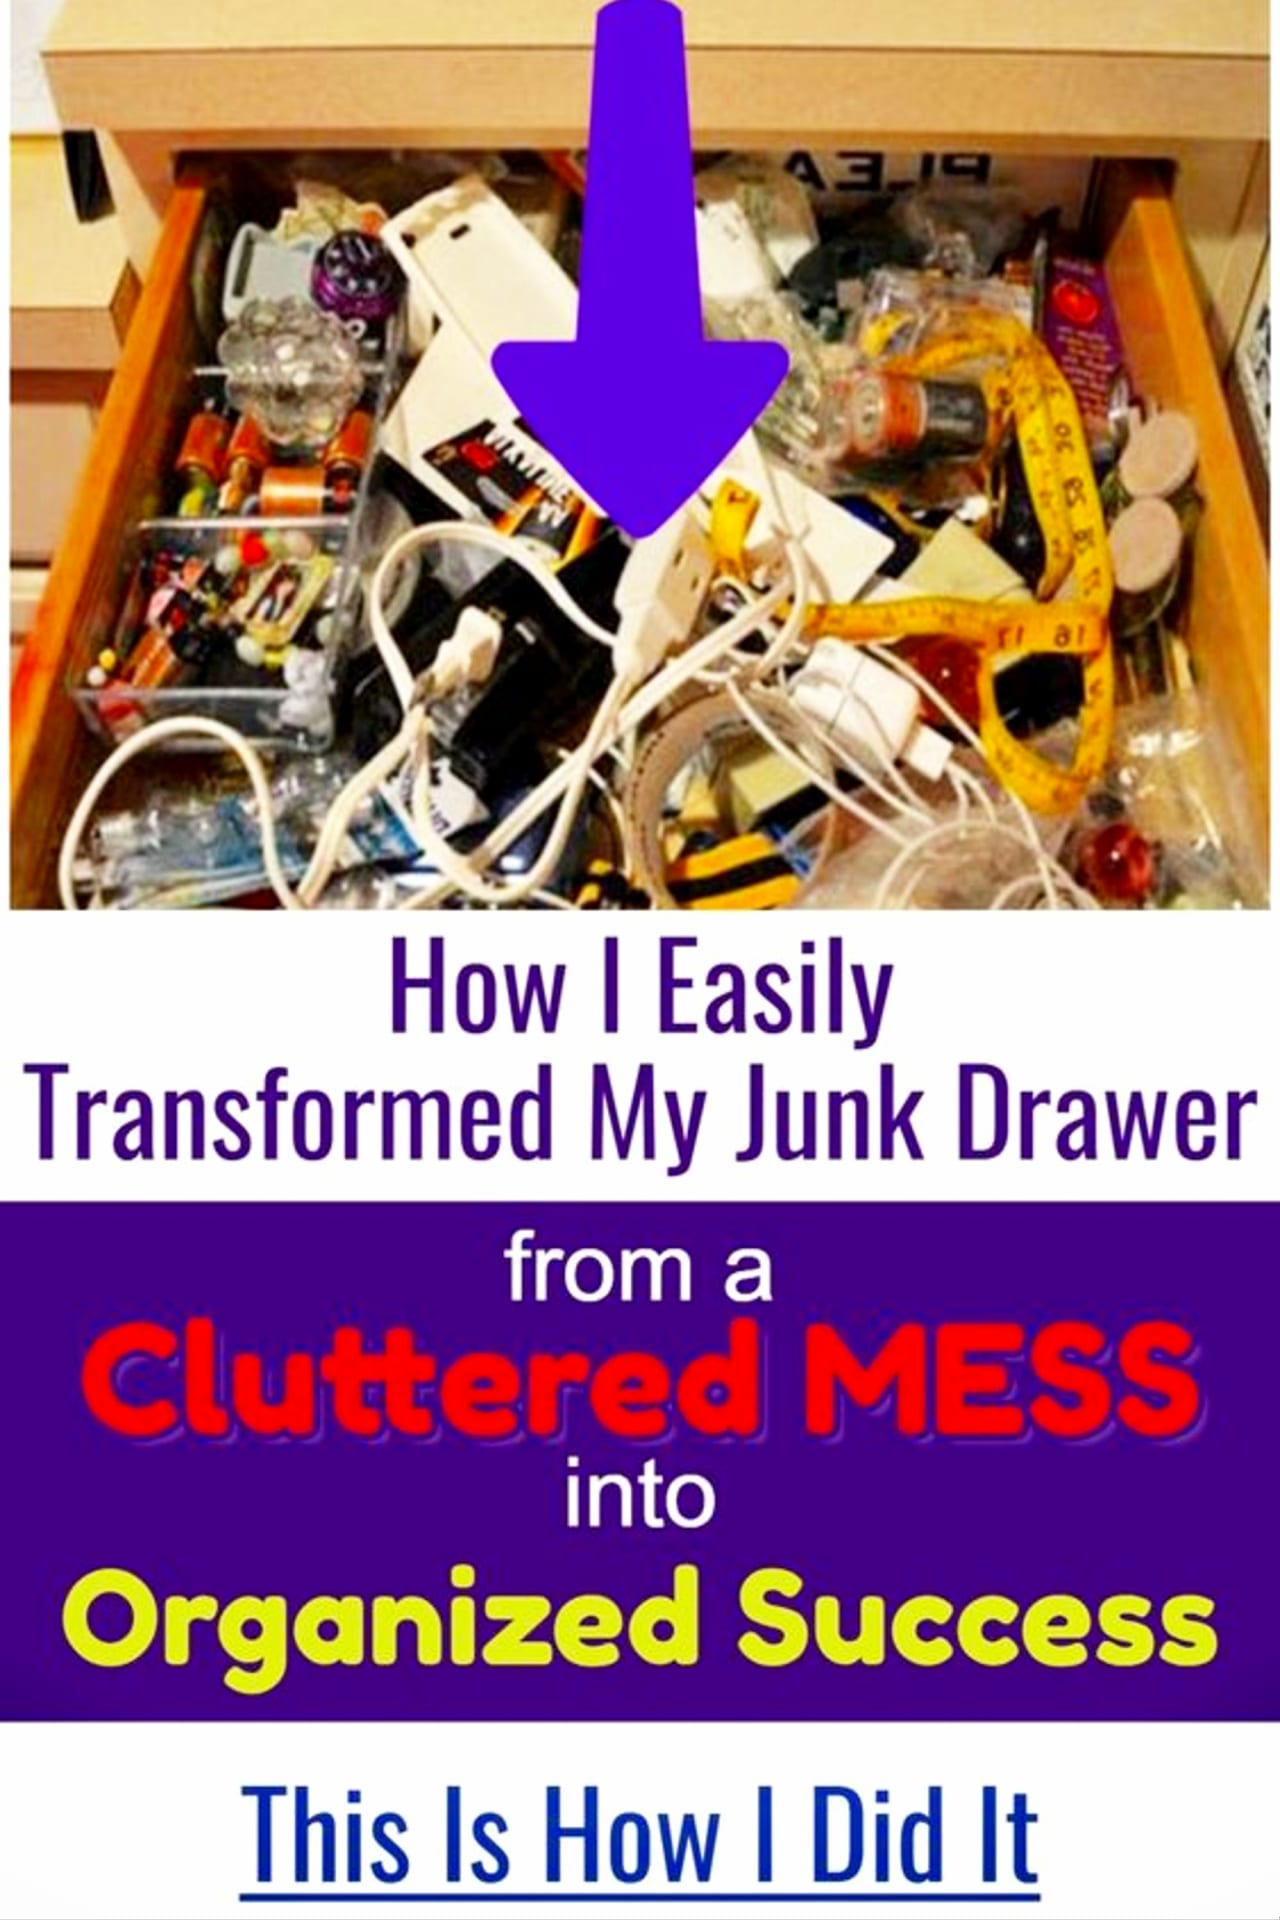 kitchen clutter solutions - declutter kitchen cabinets and drawers and organize your junk drawer on a budget